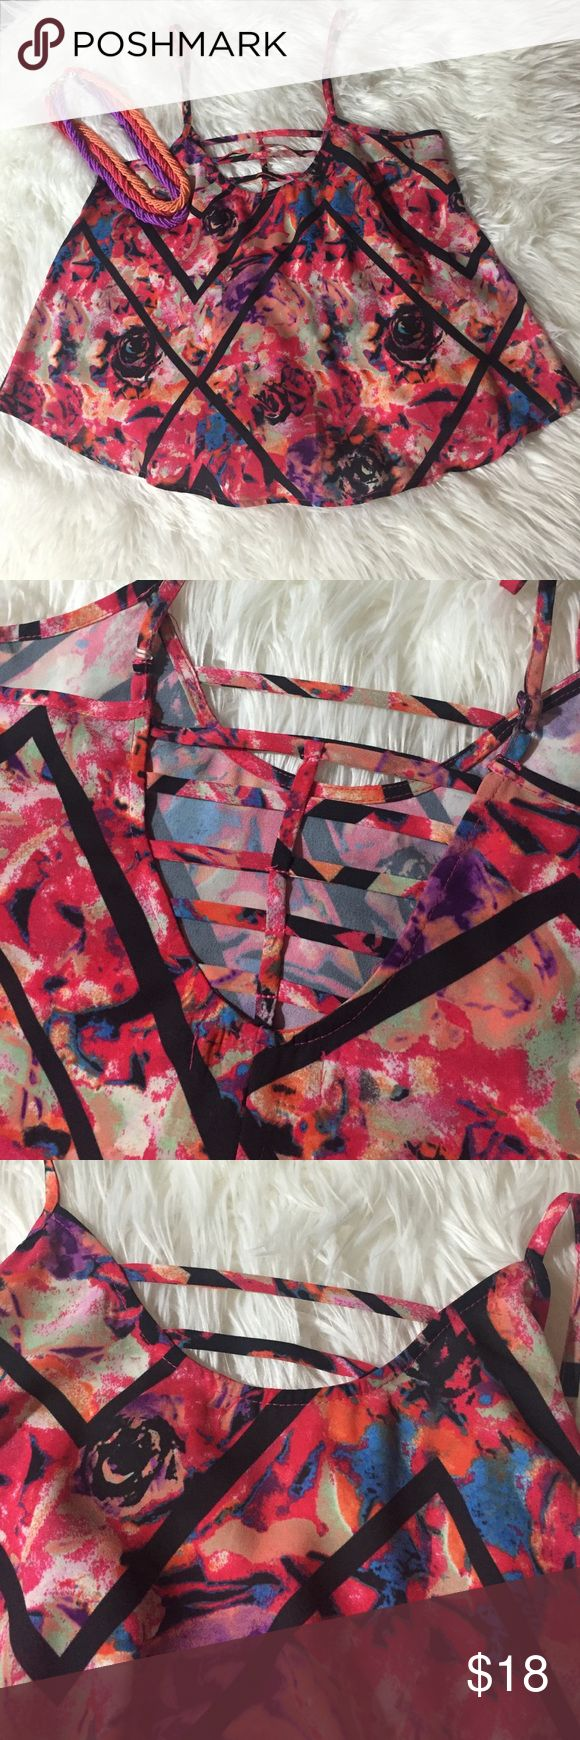 Material Girl Strappy top NWOT Bright and bold multi color crop top with strappy back and front Material Girl Tops Crop Tops